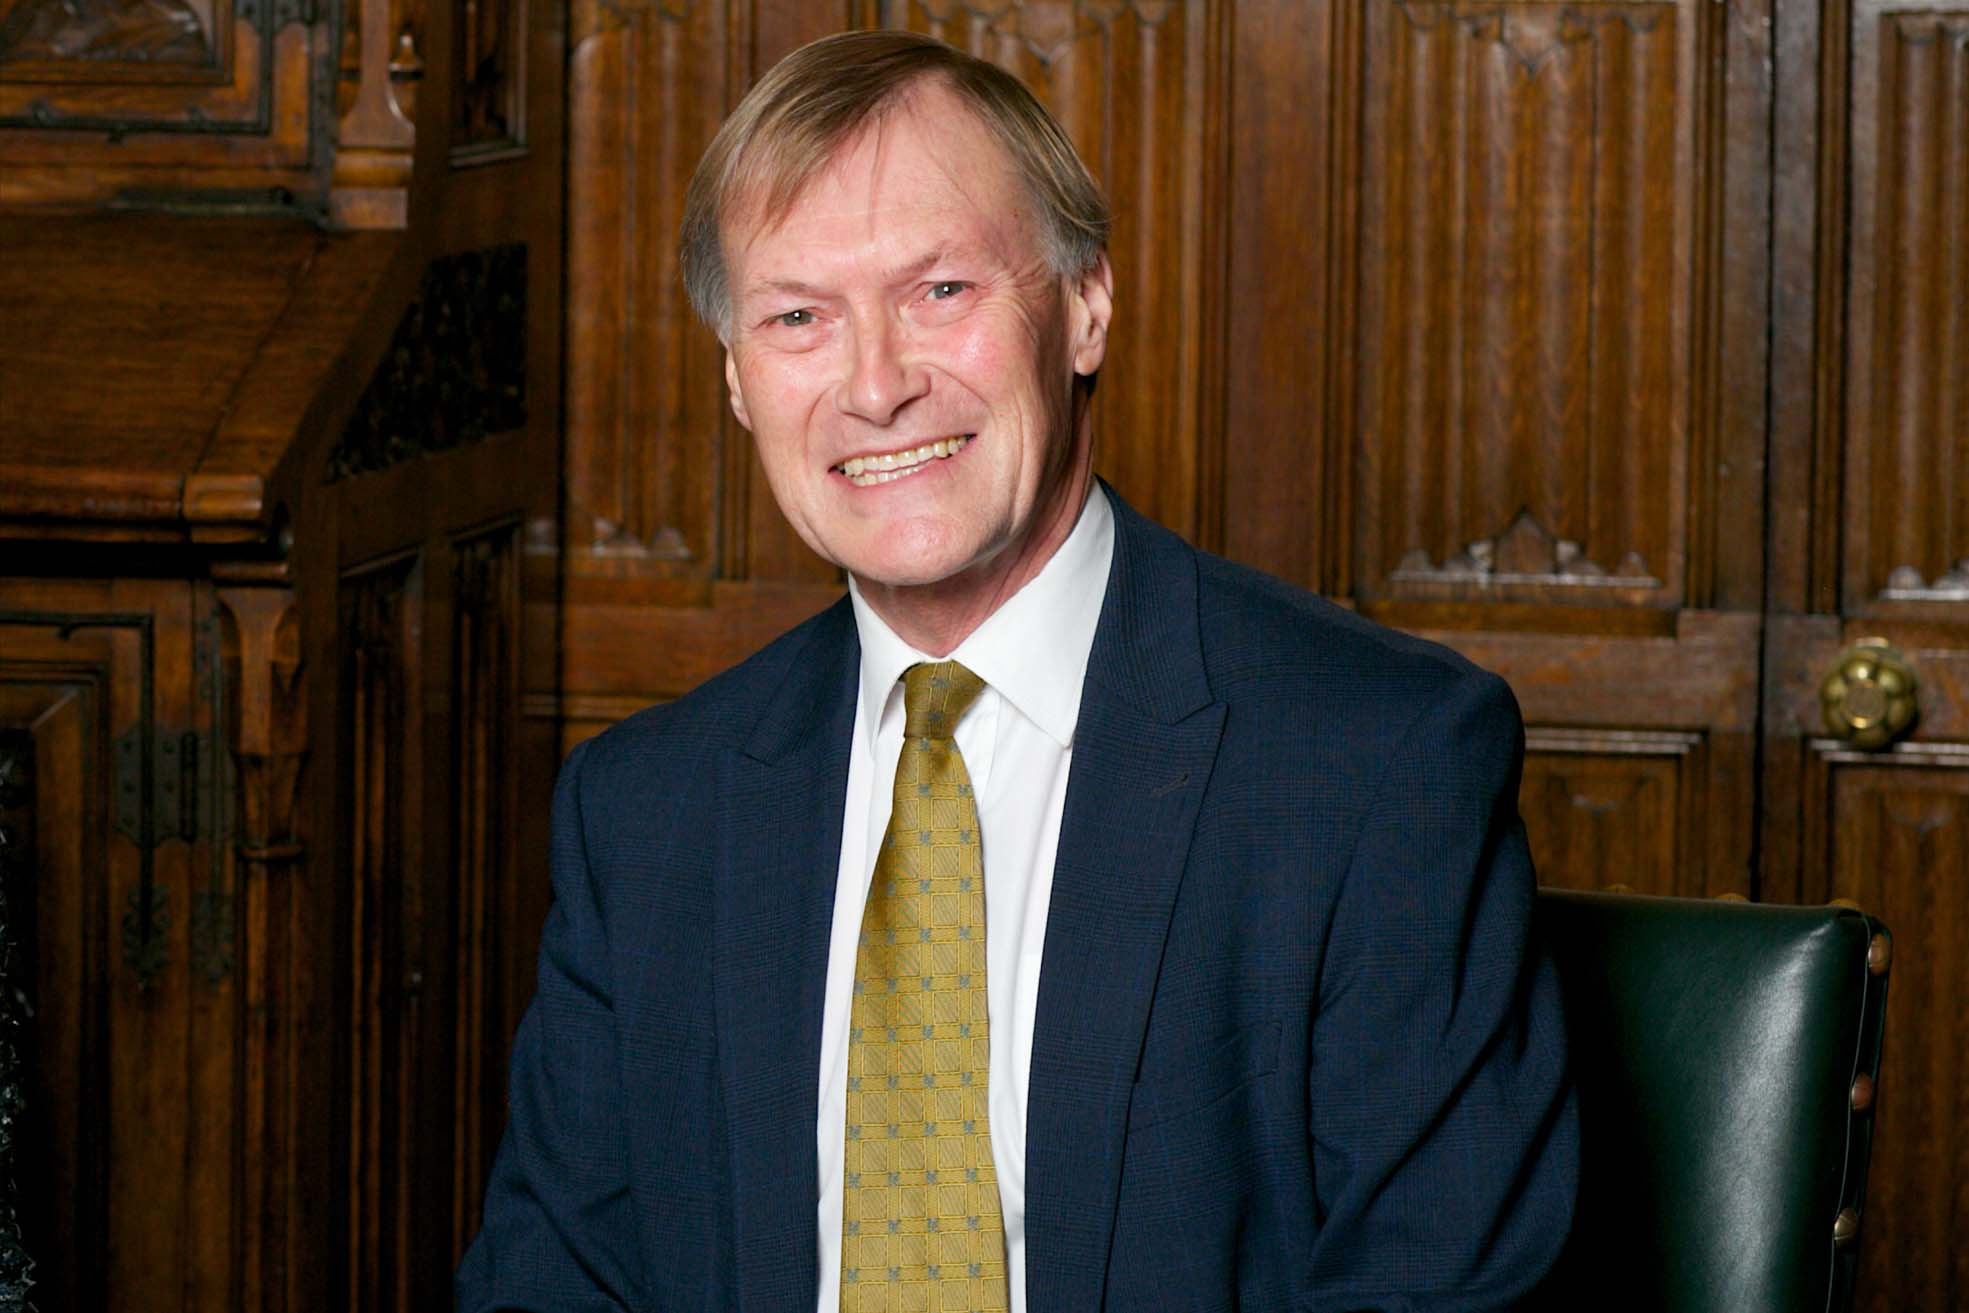 David Amess's death and the threats to all MPs show we must change the way we do politics